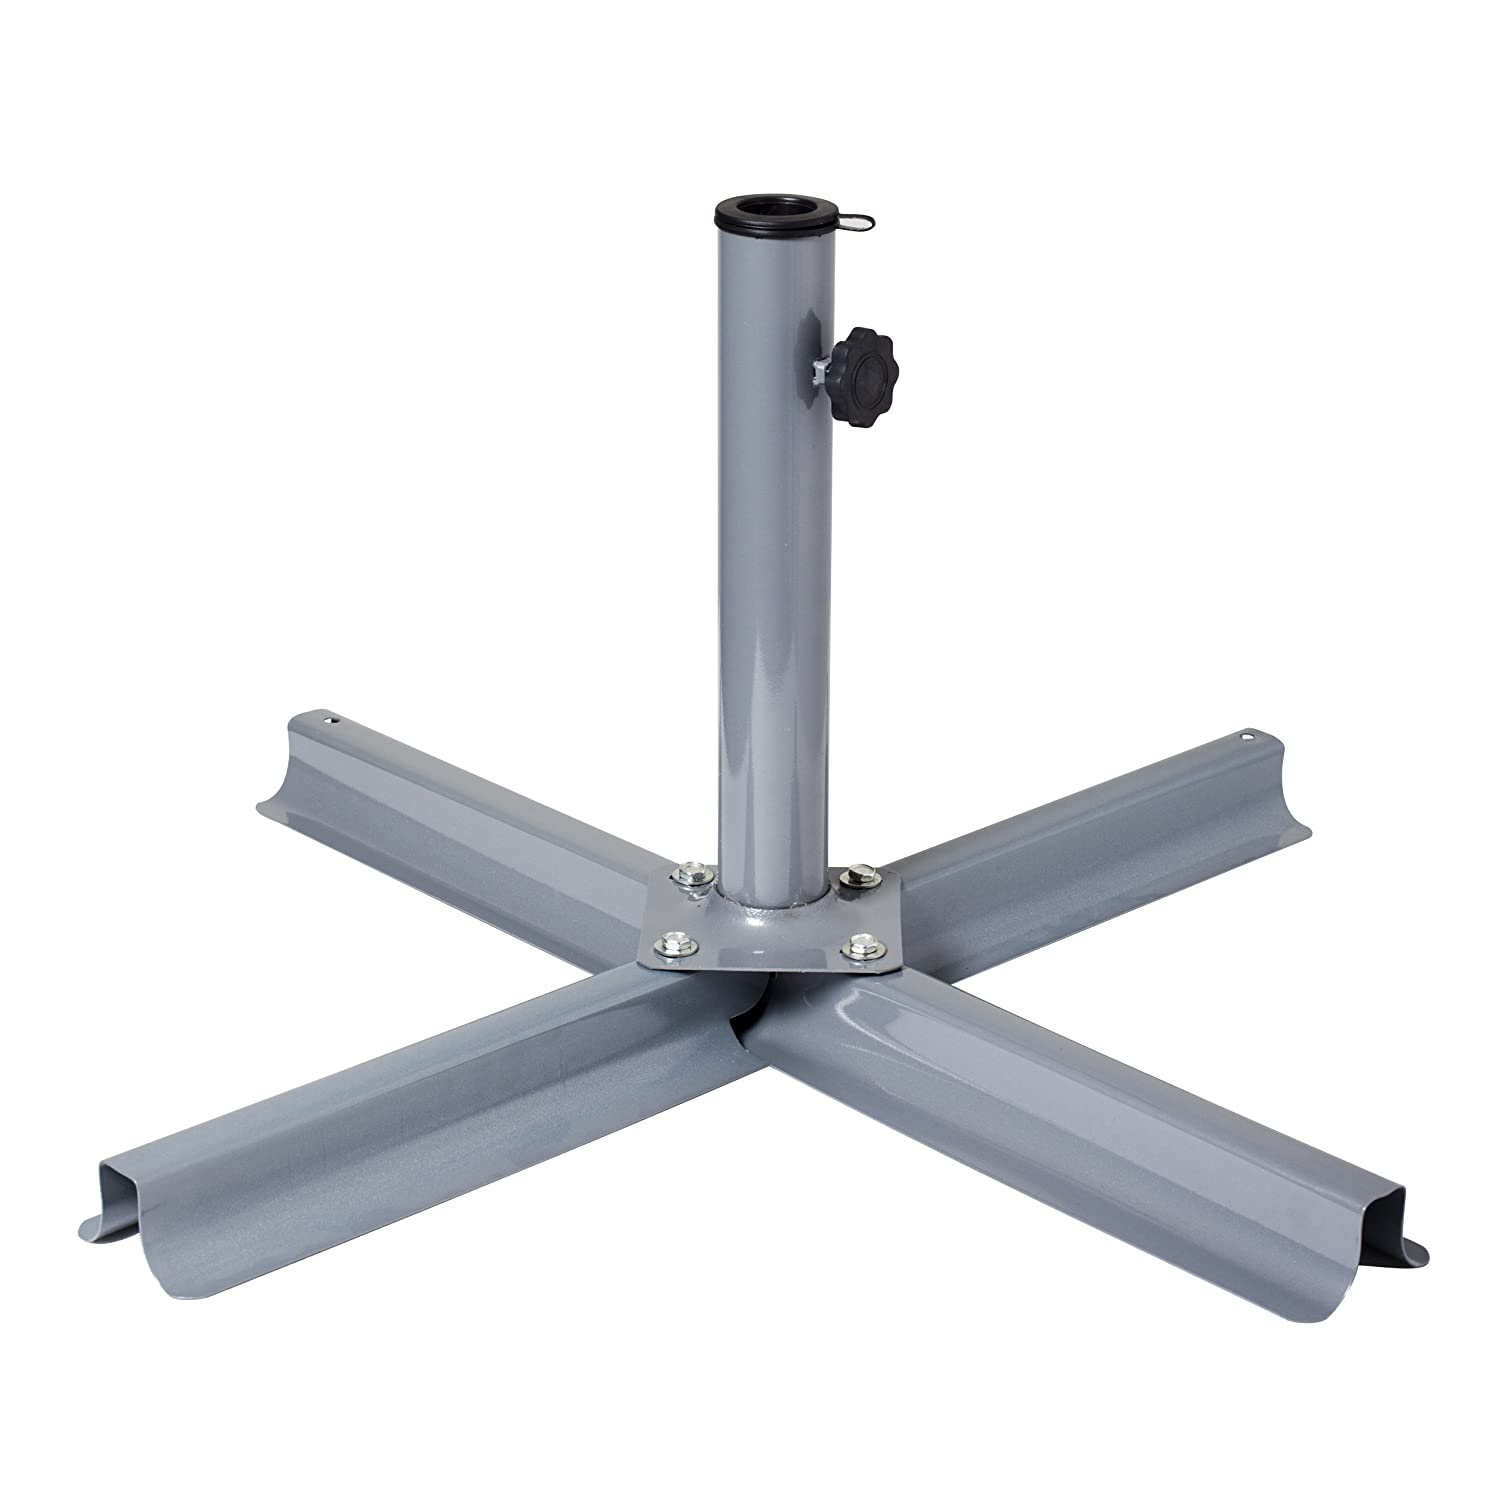 Amazon.com : CorLiving PPU 900 U Patio Umbrella Stand, Grey : Garden U0026  Outdoor